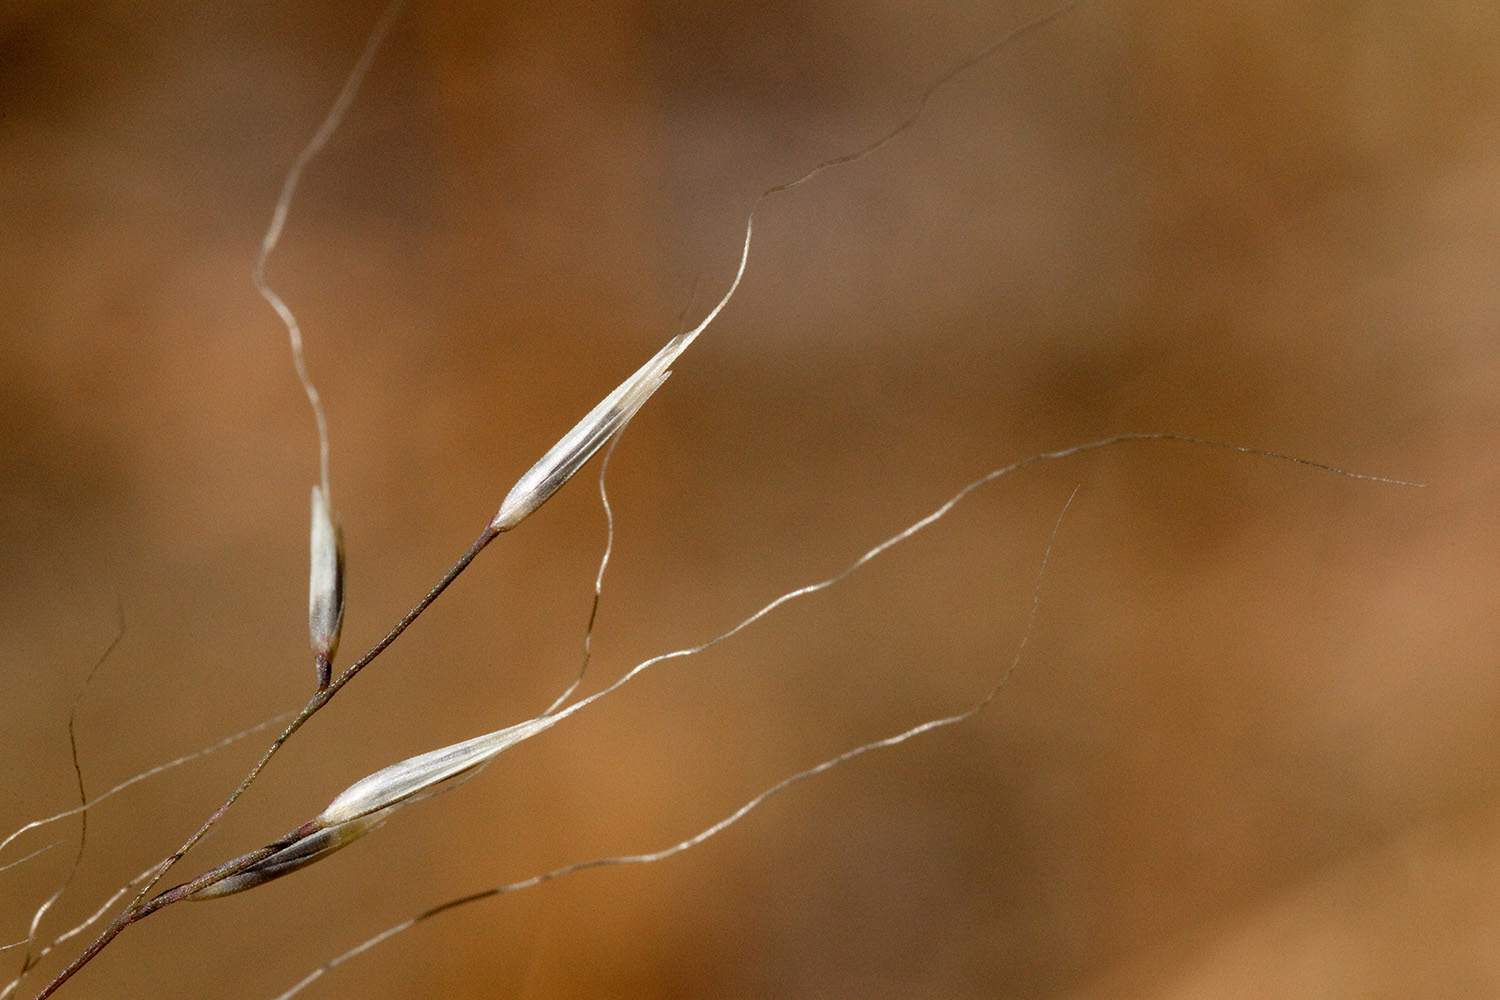 Close-up of seeds, which are very wispy with long awns